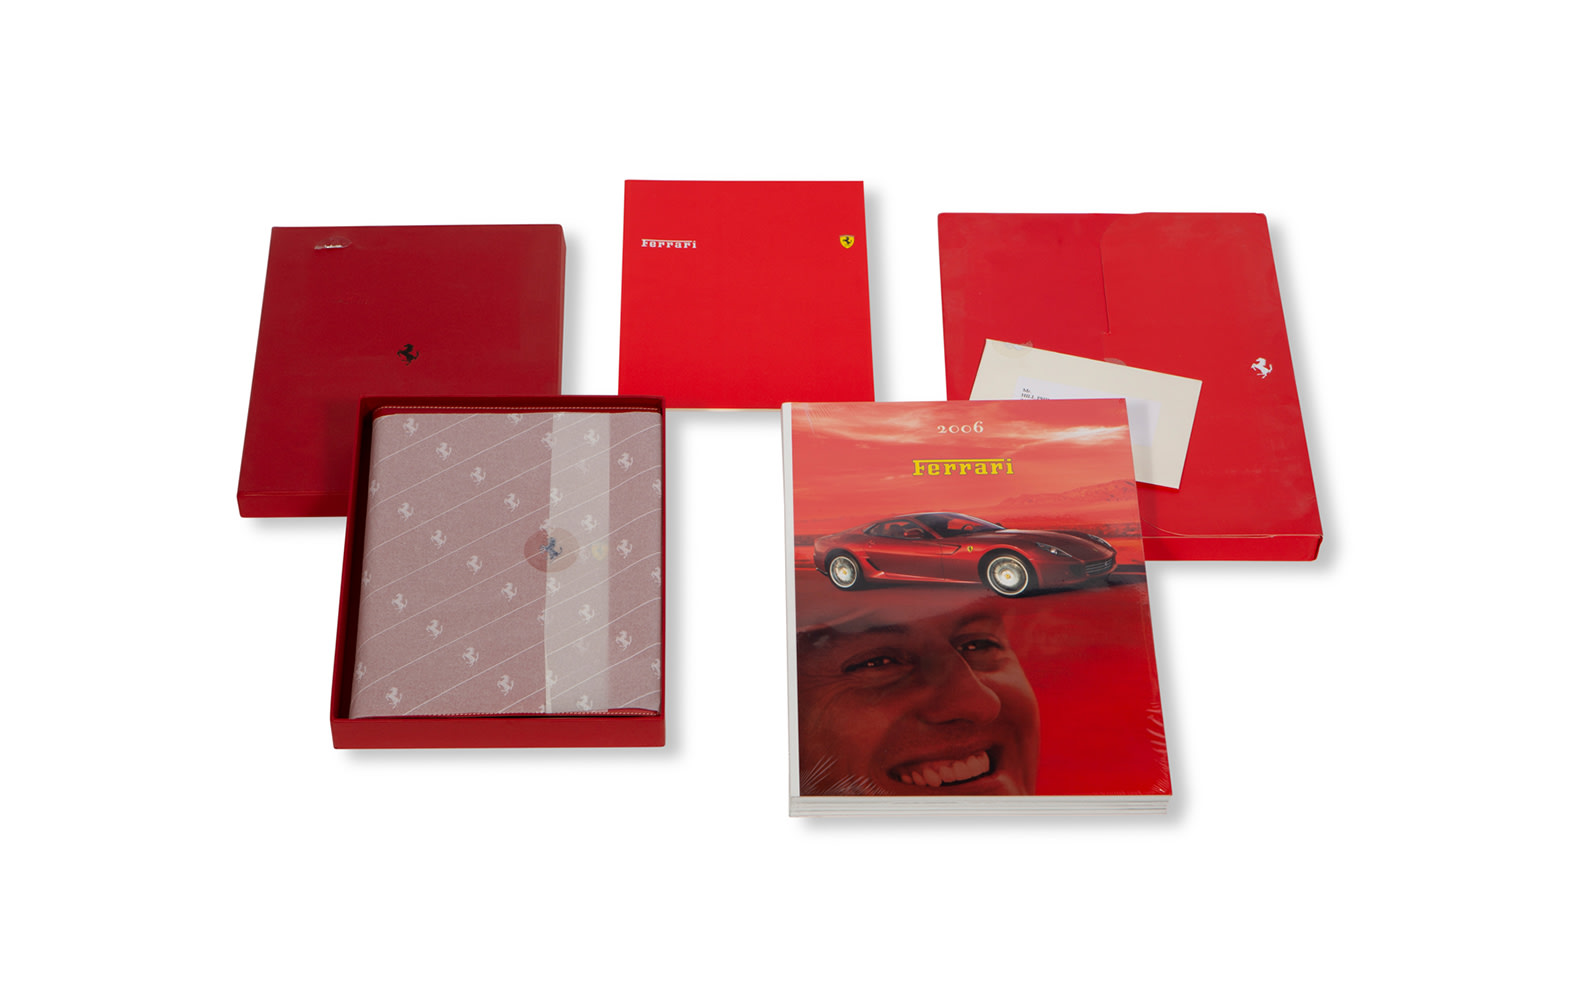 2006 Holiday Gift to Phil Hill From Ferrari, Including Planner and Yearbook